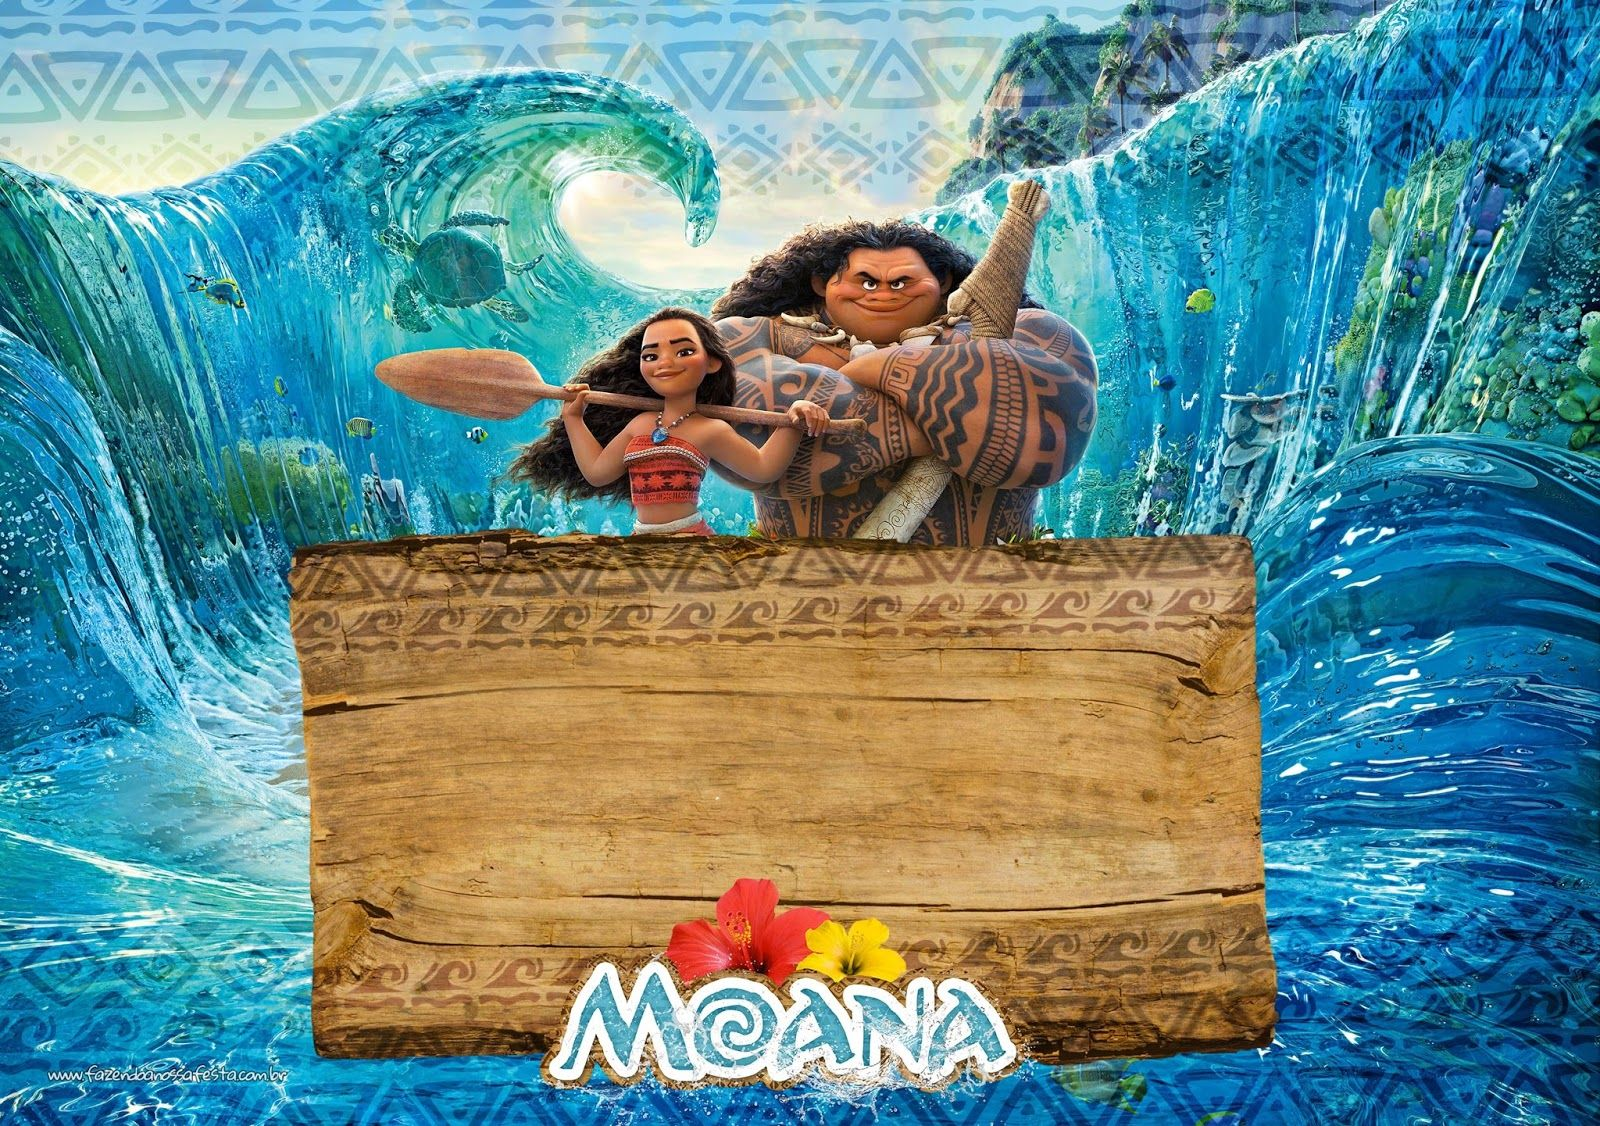 Moana Free Printable Invitations Moana Birthday Moana Invitation Moana Birthday Invitation